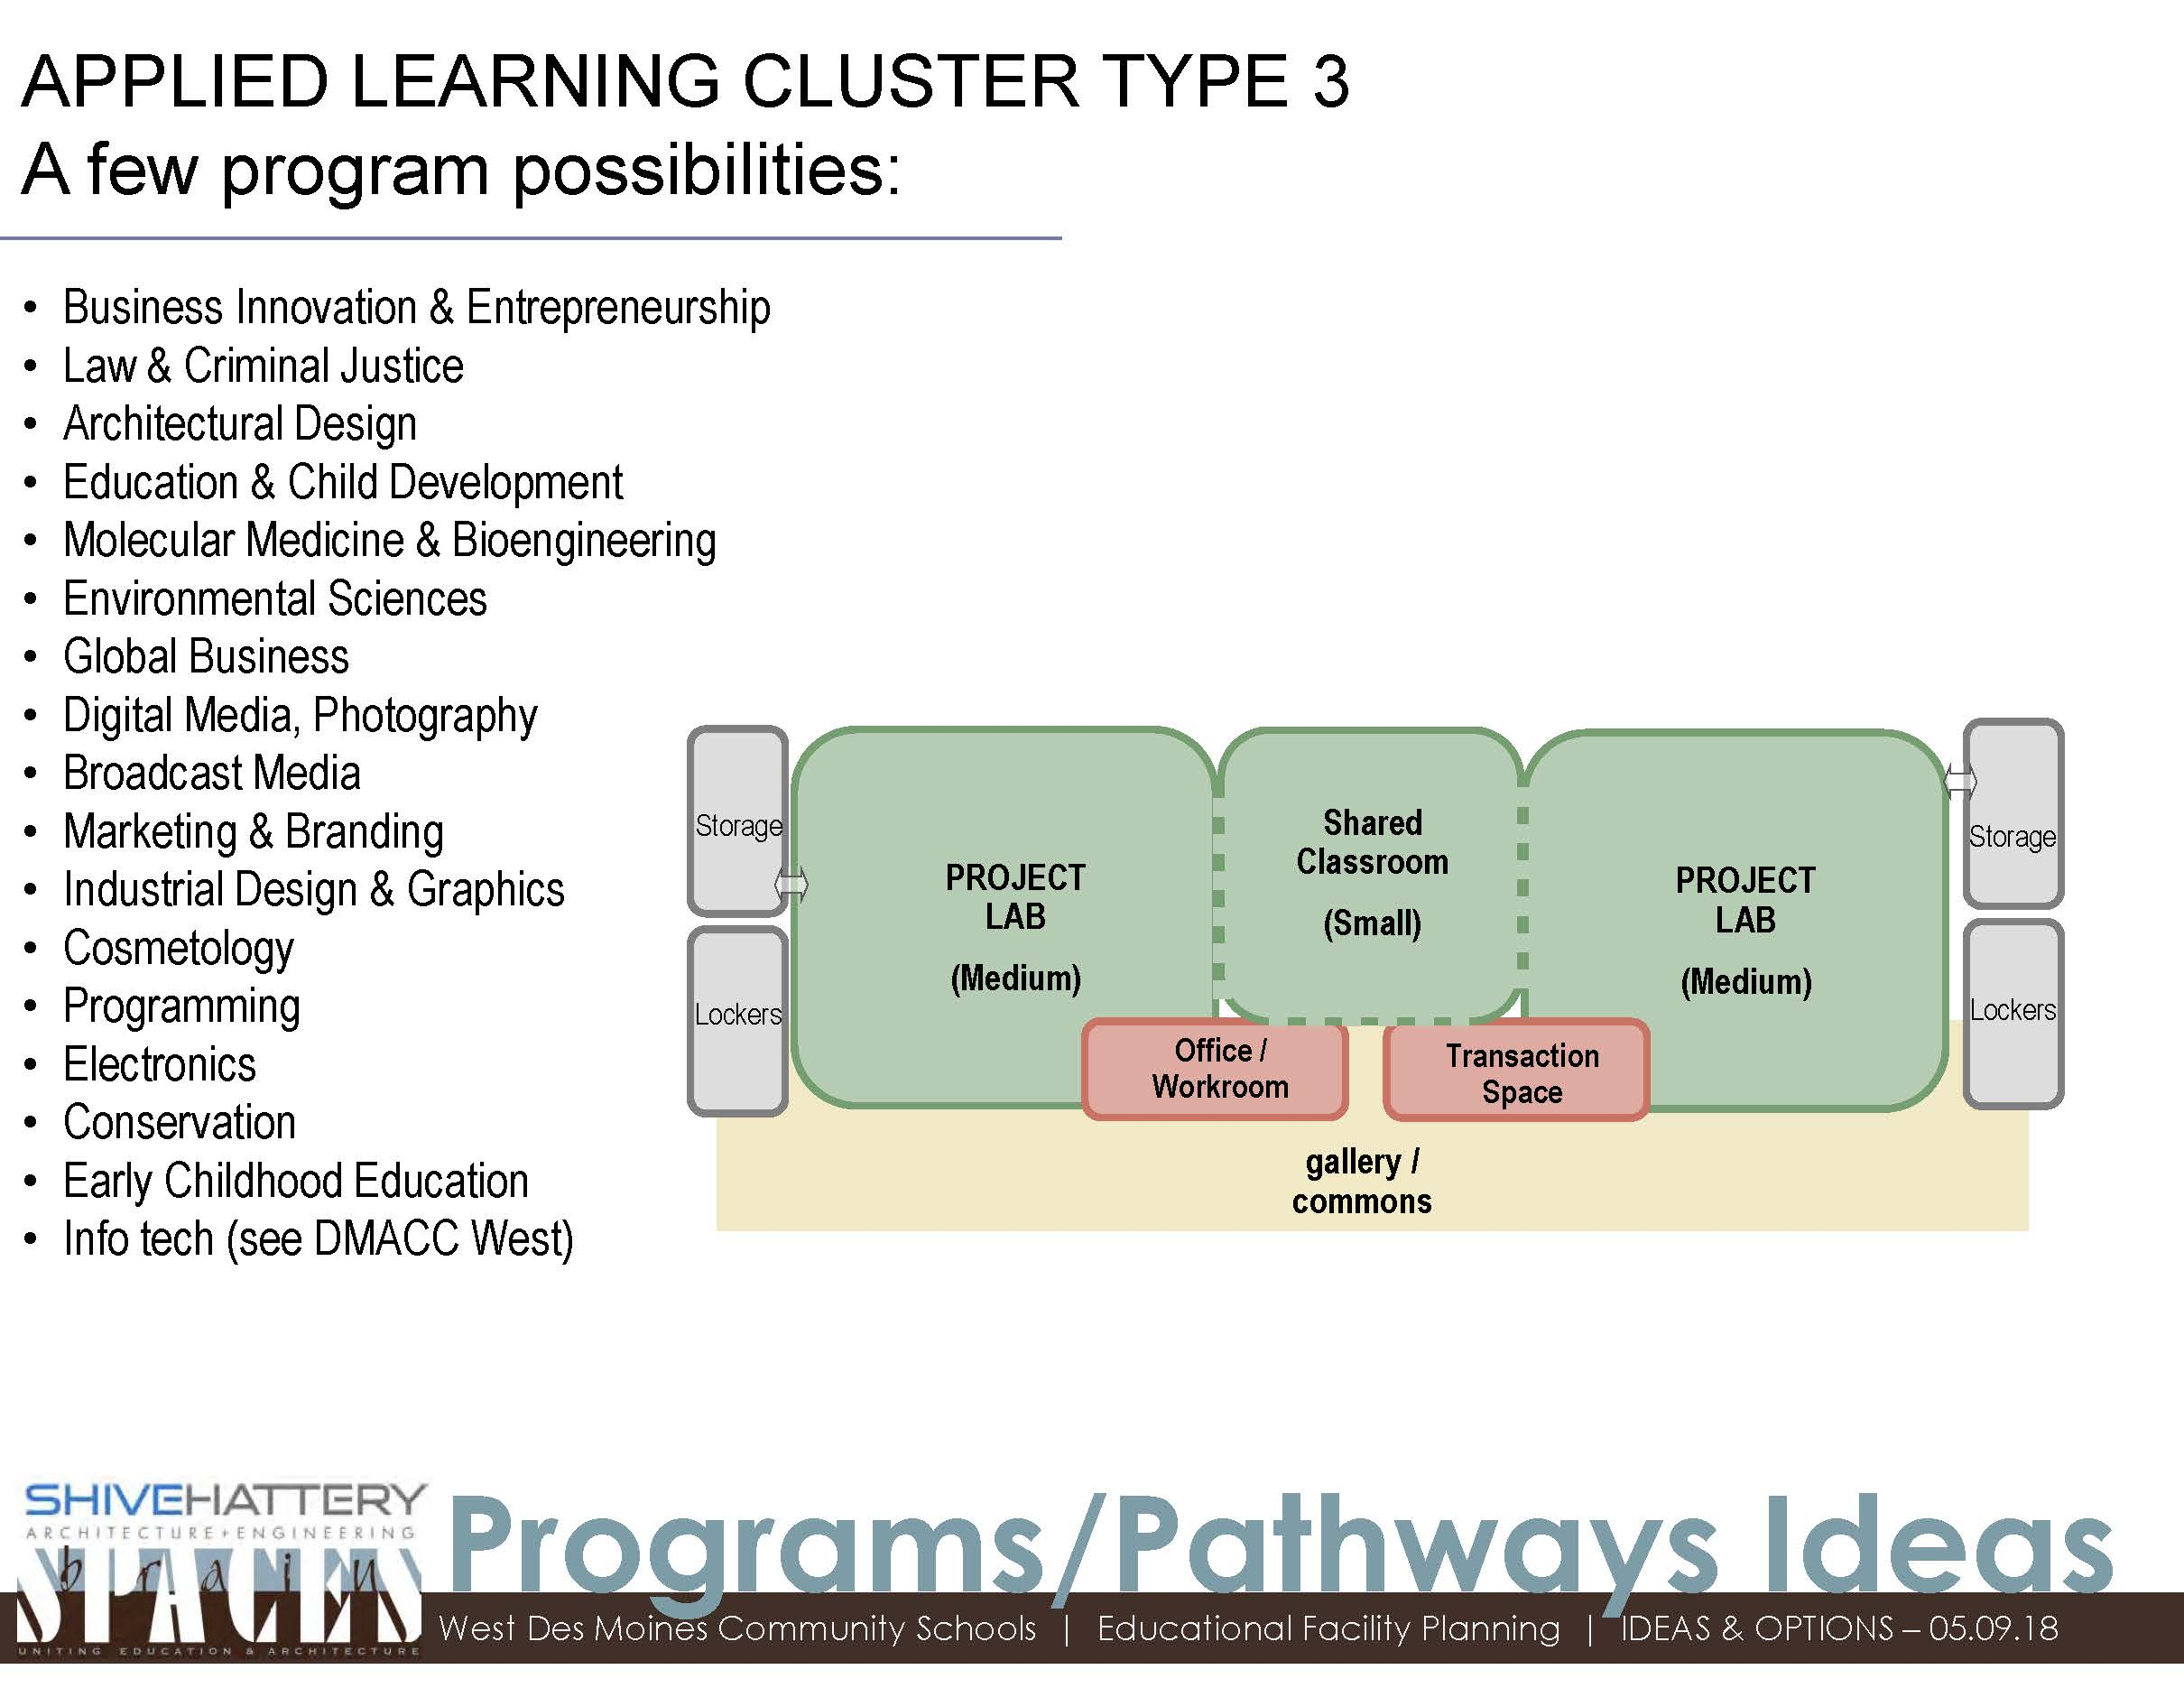 Applied Learning Cluster type 3  This graphic indicates program options that would require a combination of small to medium spaces. Flexibility in adjusting the size of each space would allow for the greatest number of configurations based on programs offered.   Click on the graphic to view full image.